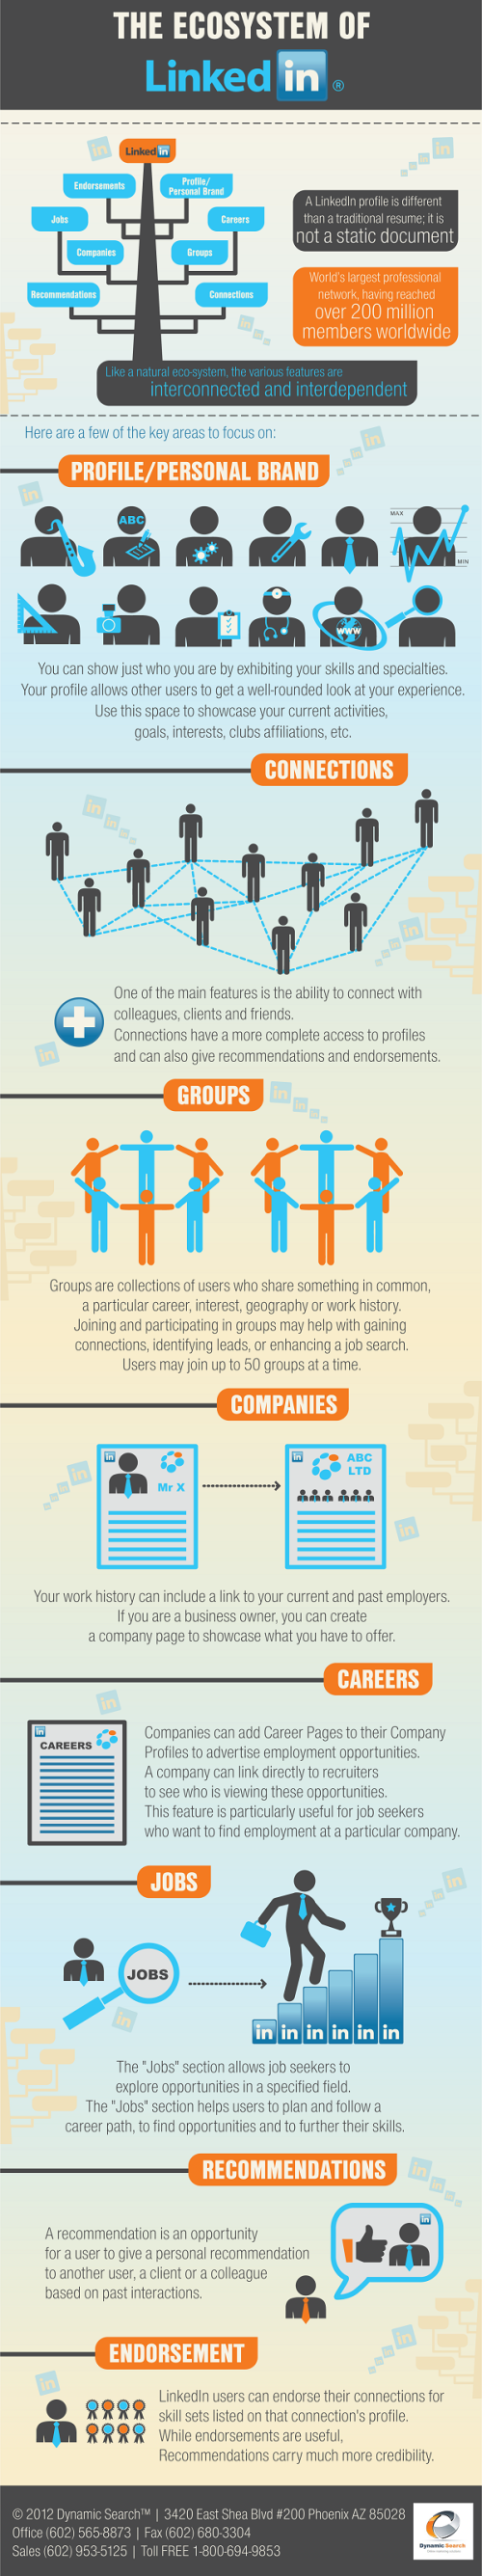 The Ecosystem of Linkedin infogrpahic